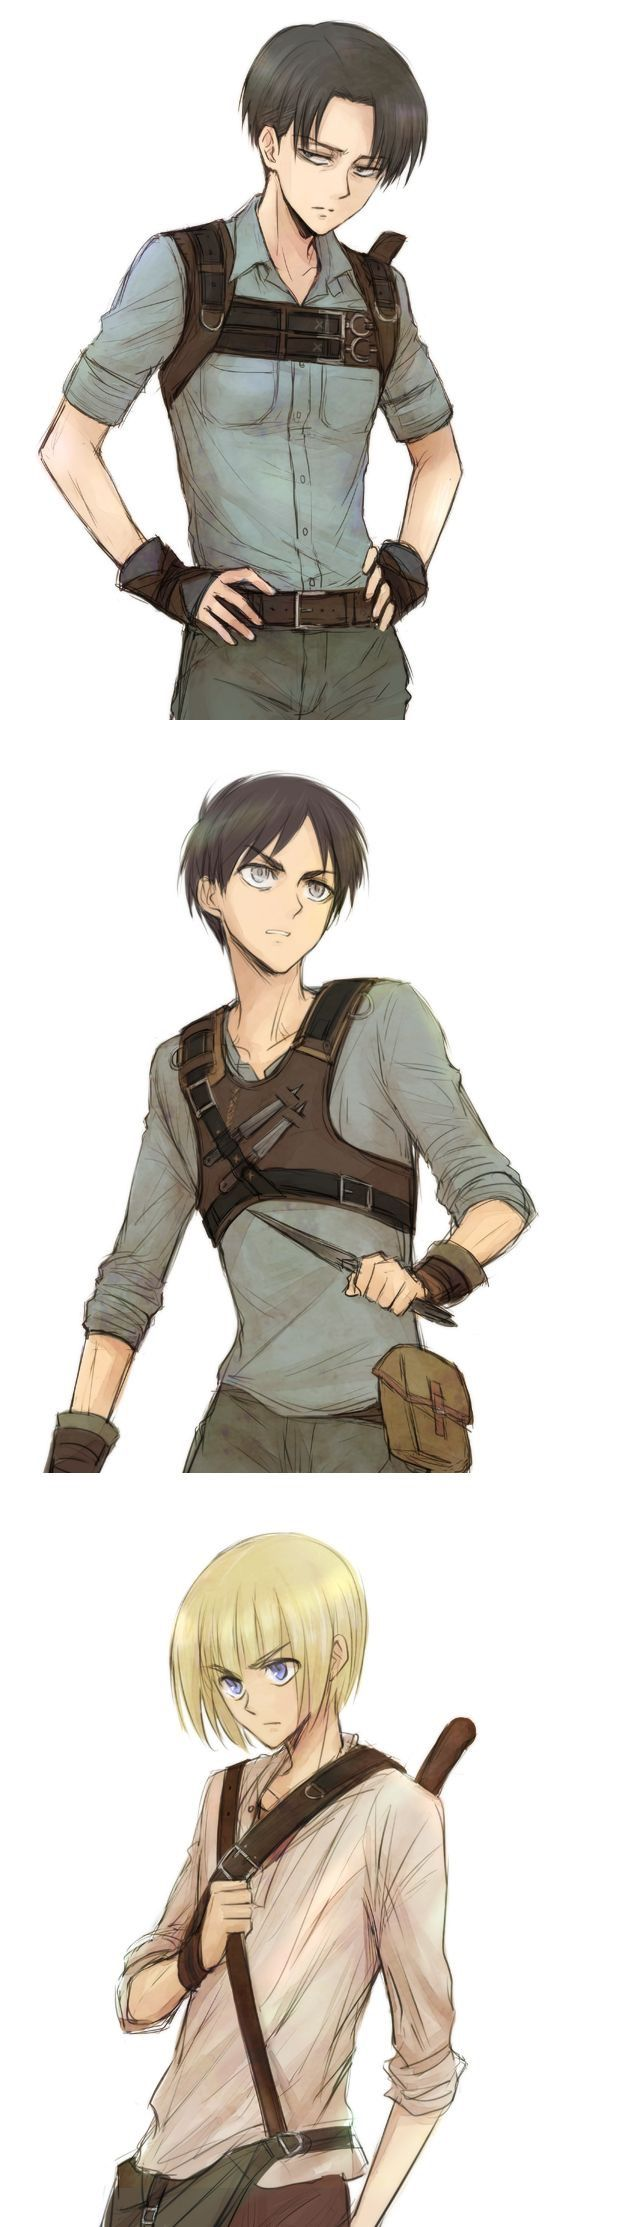 295 best images about attack on titan on pinterest